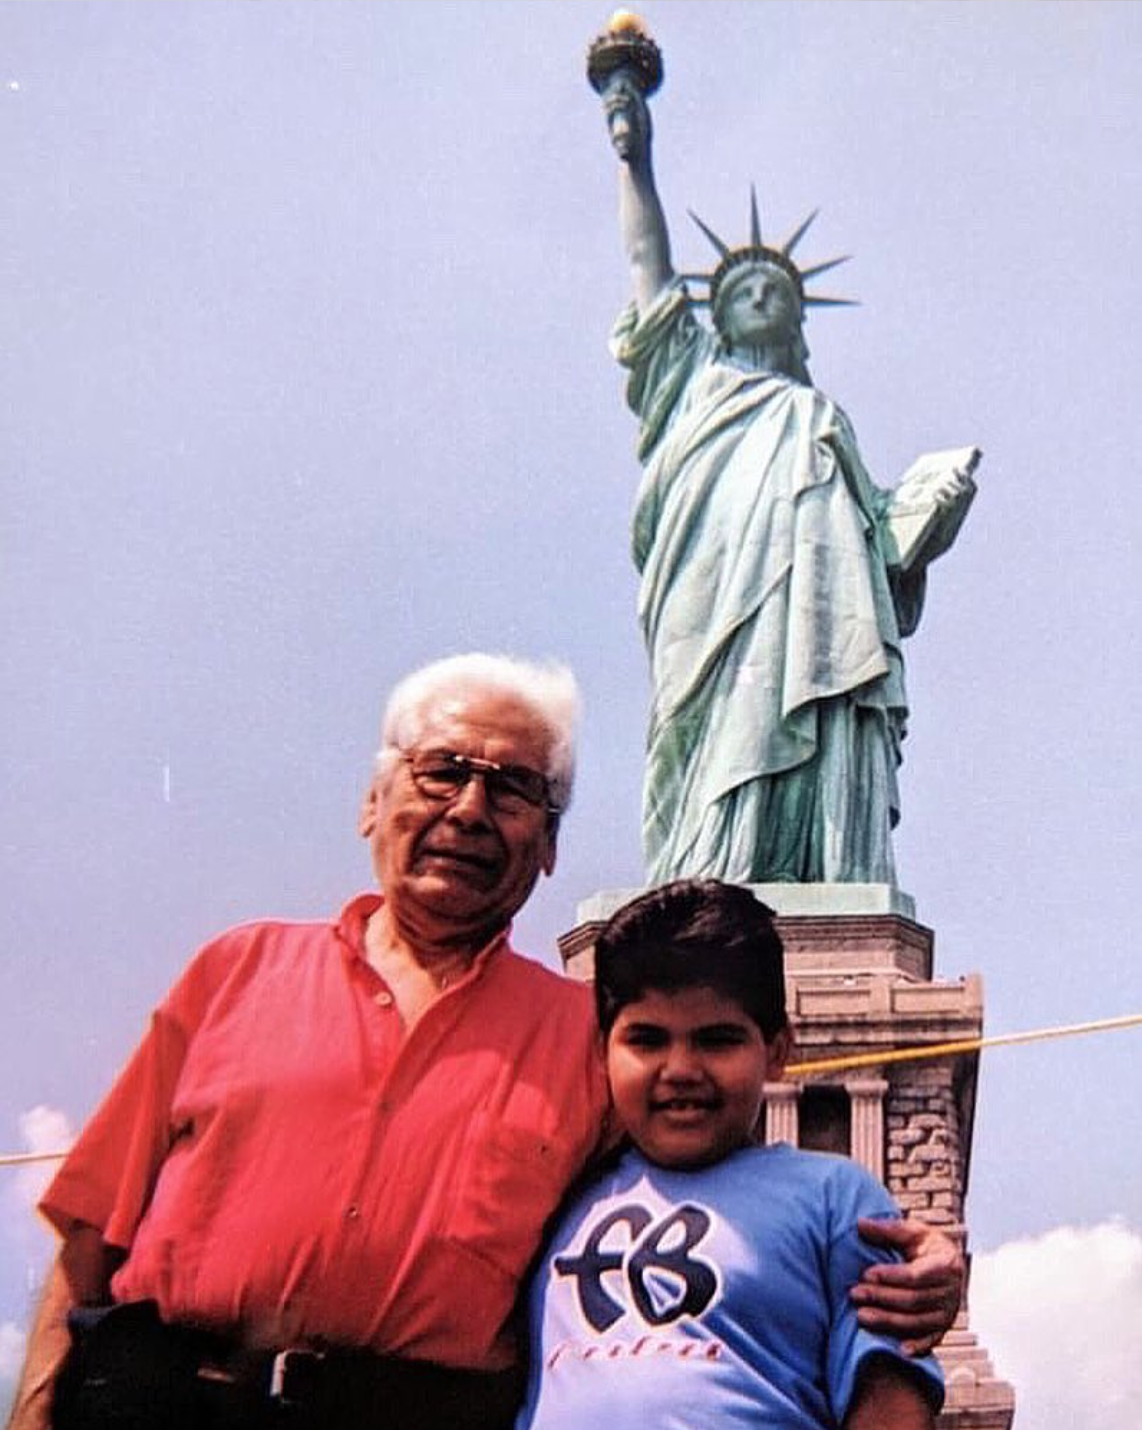 Ricardo and Ricky Delgado. Statue of Liberty, 2000.    READ HIS STORY     .